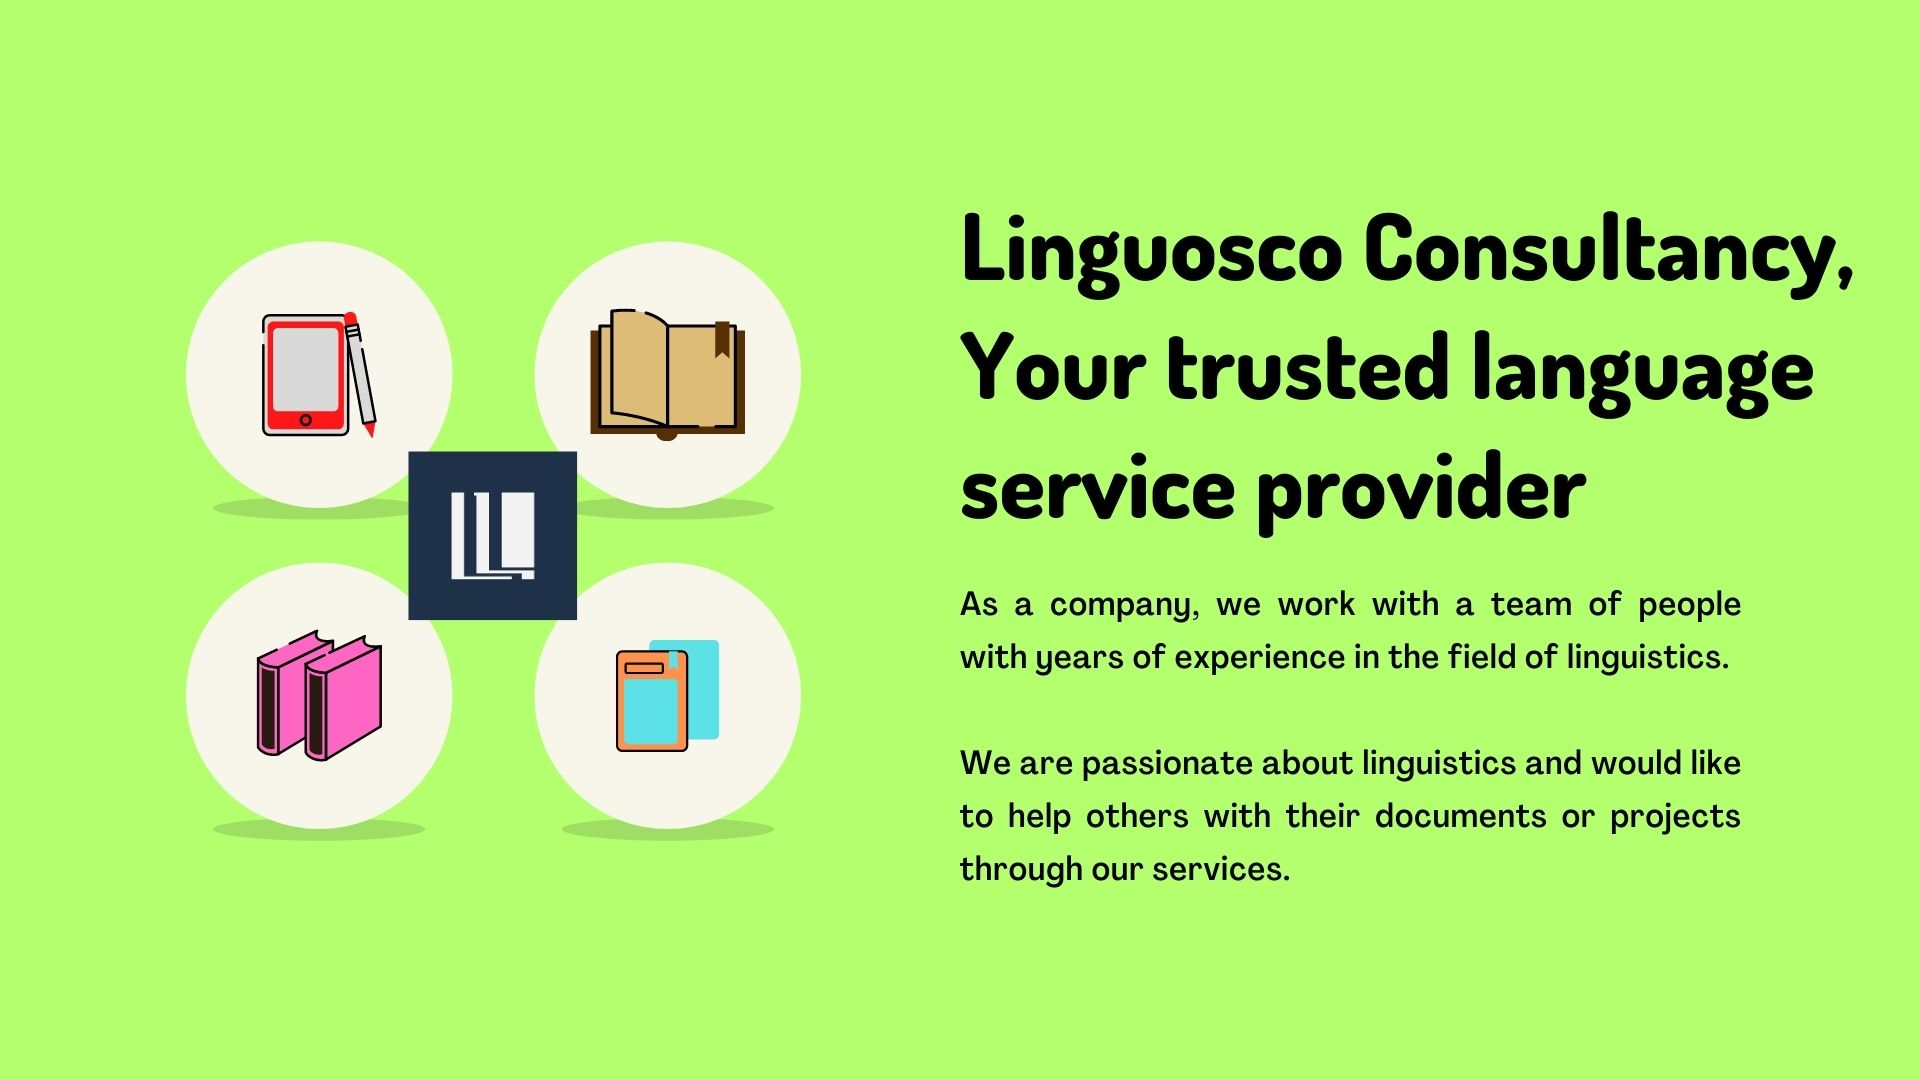 Linguosco - Your trusted language service provider